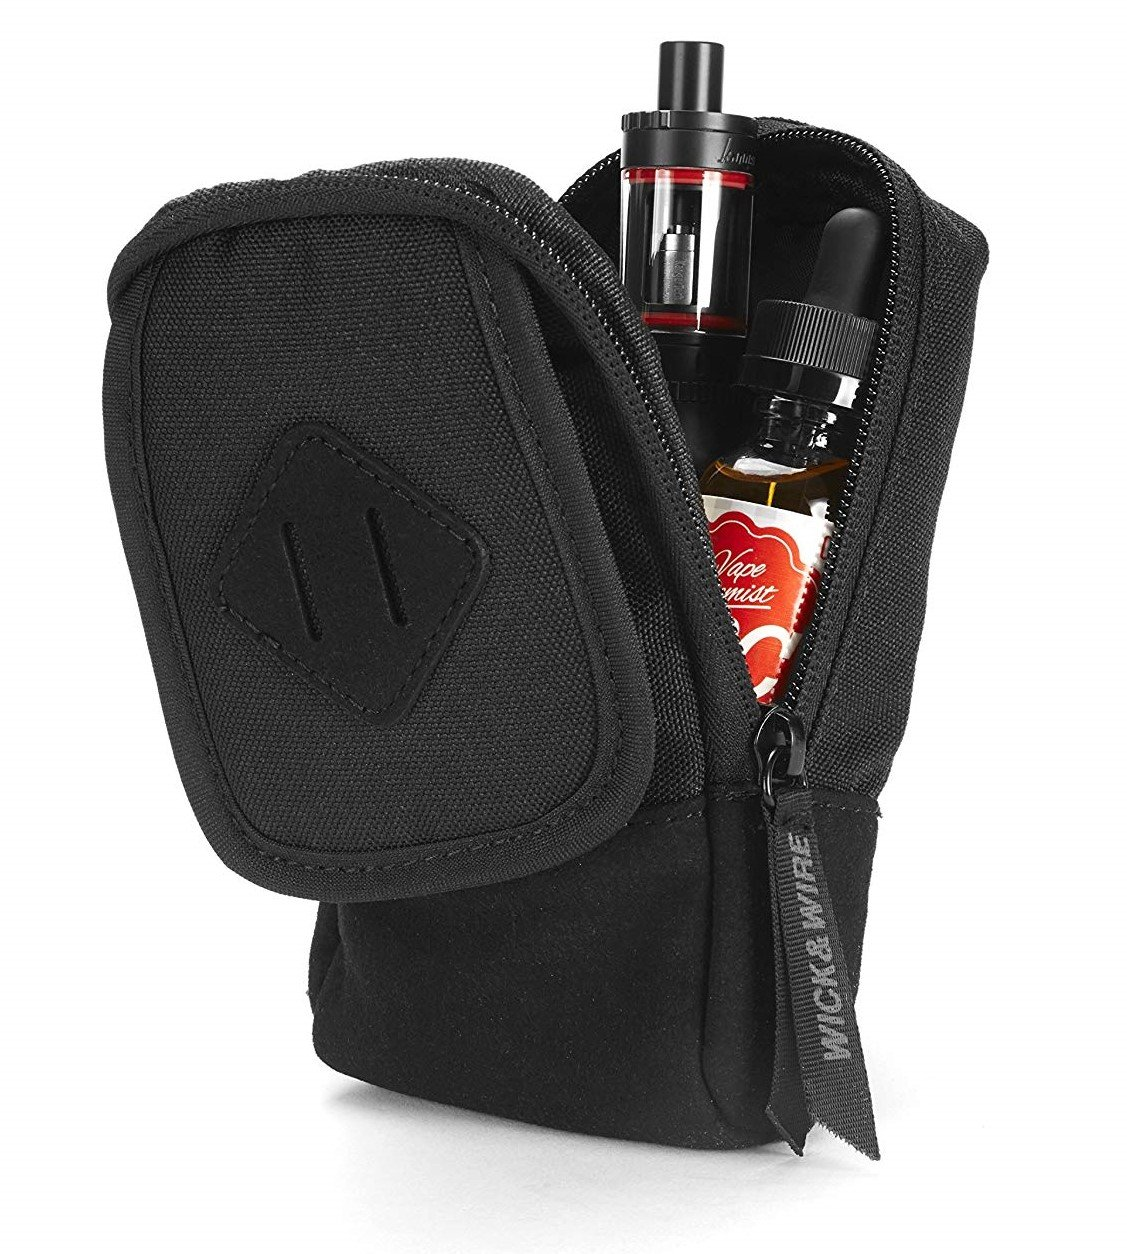 Vape Case for Travel – Secure, Organized, Premium Vape Bag – Fits Any Mechanical Box Mods, e-Juice, Battery, Tank Holder & Accessories - Wick and Wire (Primo Black/Suede)